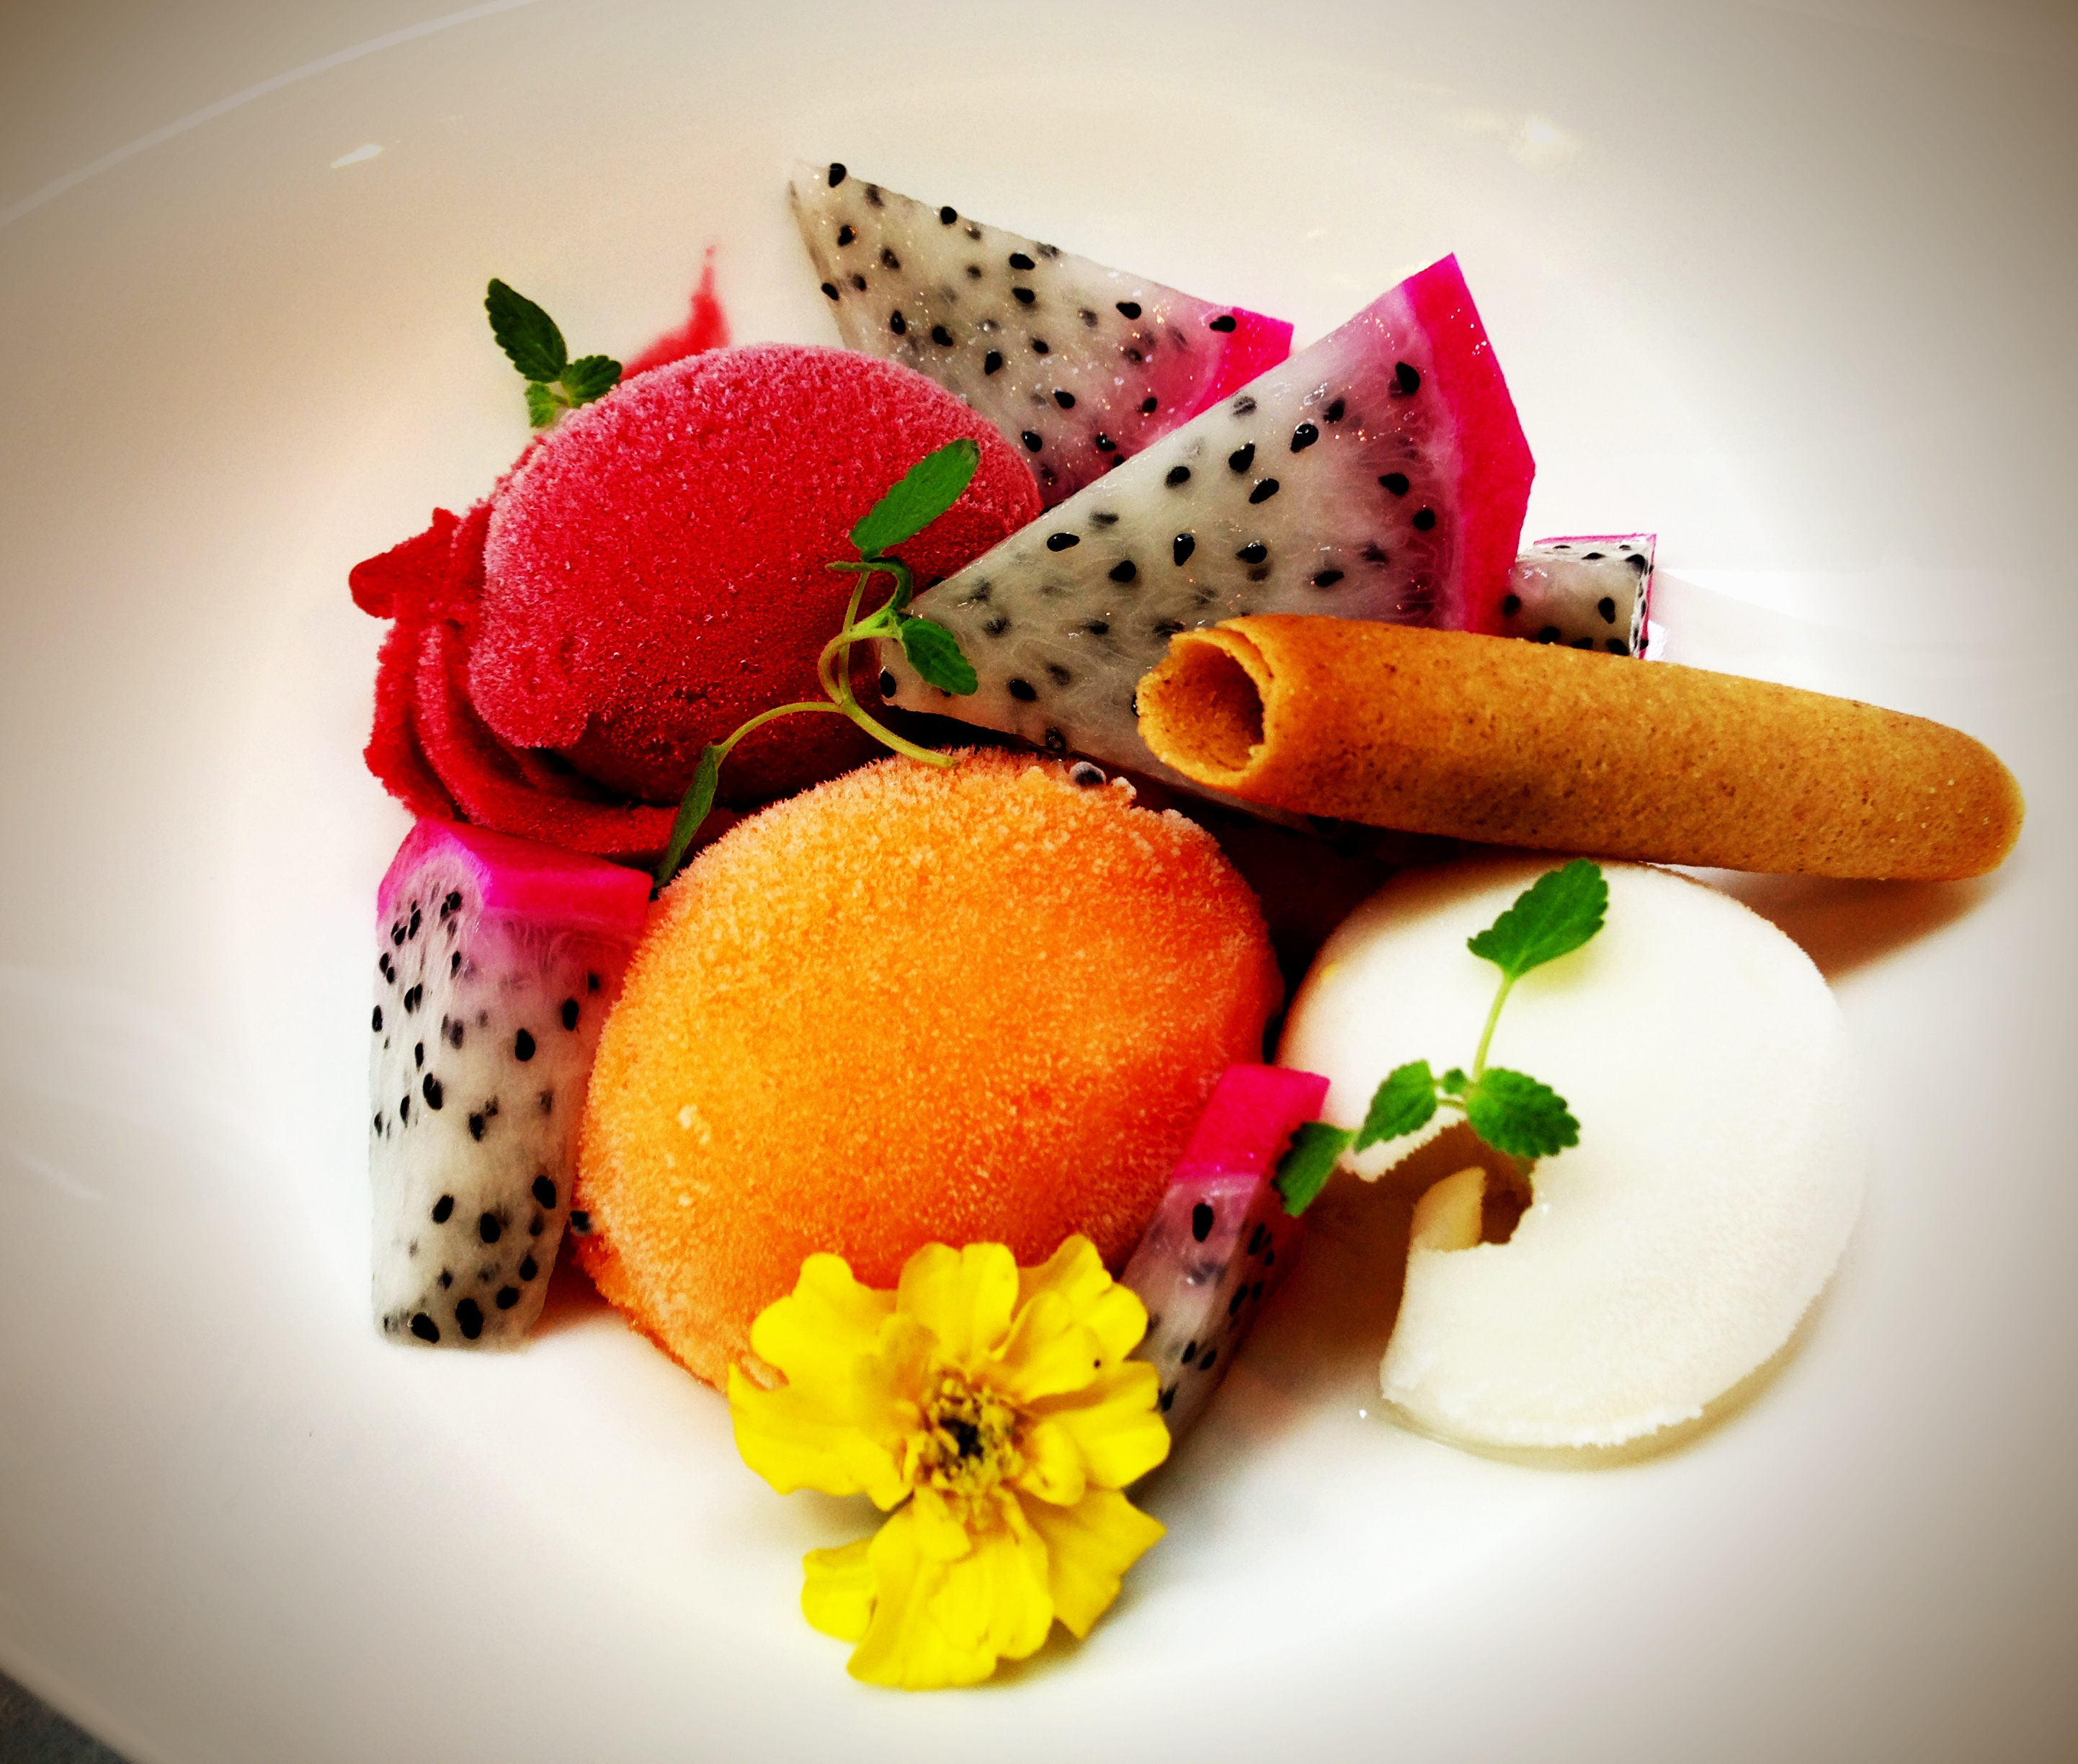 Raspberry, Orange and Lemon Sorbet